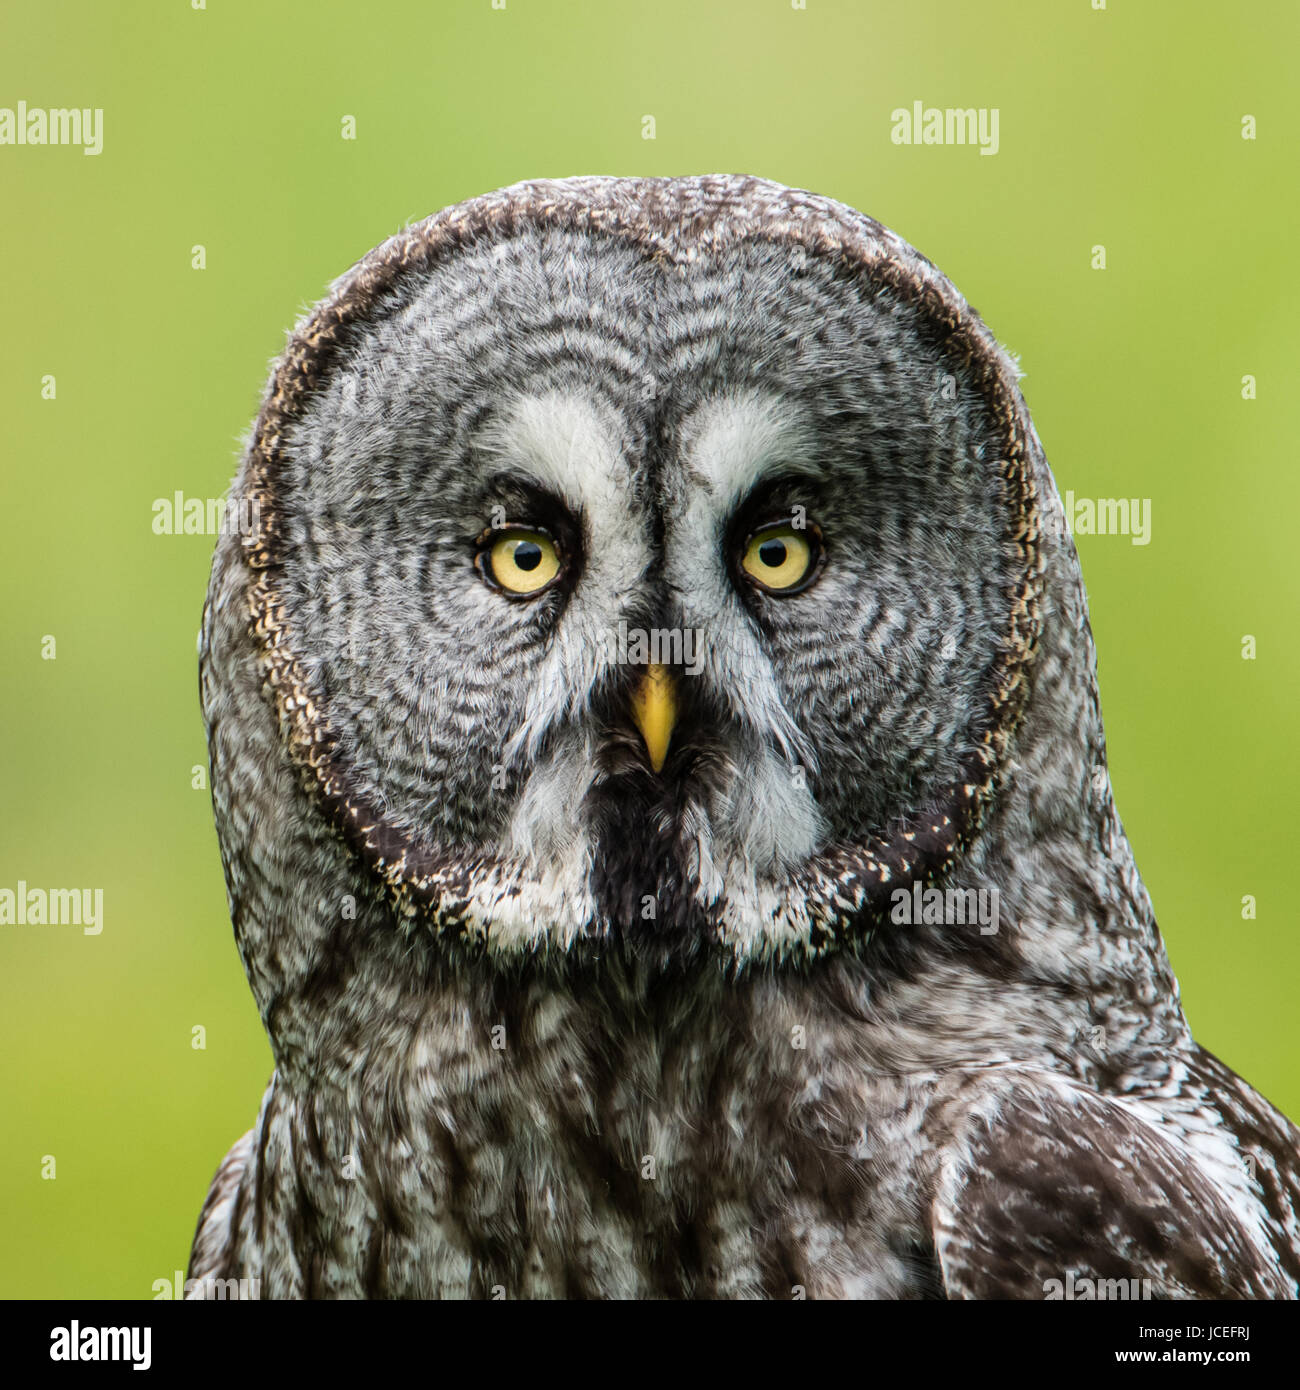 A Great Grey Owl (Strix Nebulosa) shows his beautiful face in this squared close up portrait  when perching on  - Stock Image